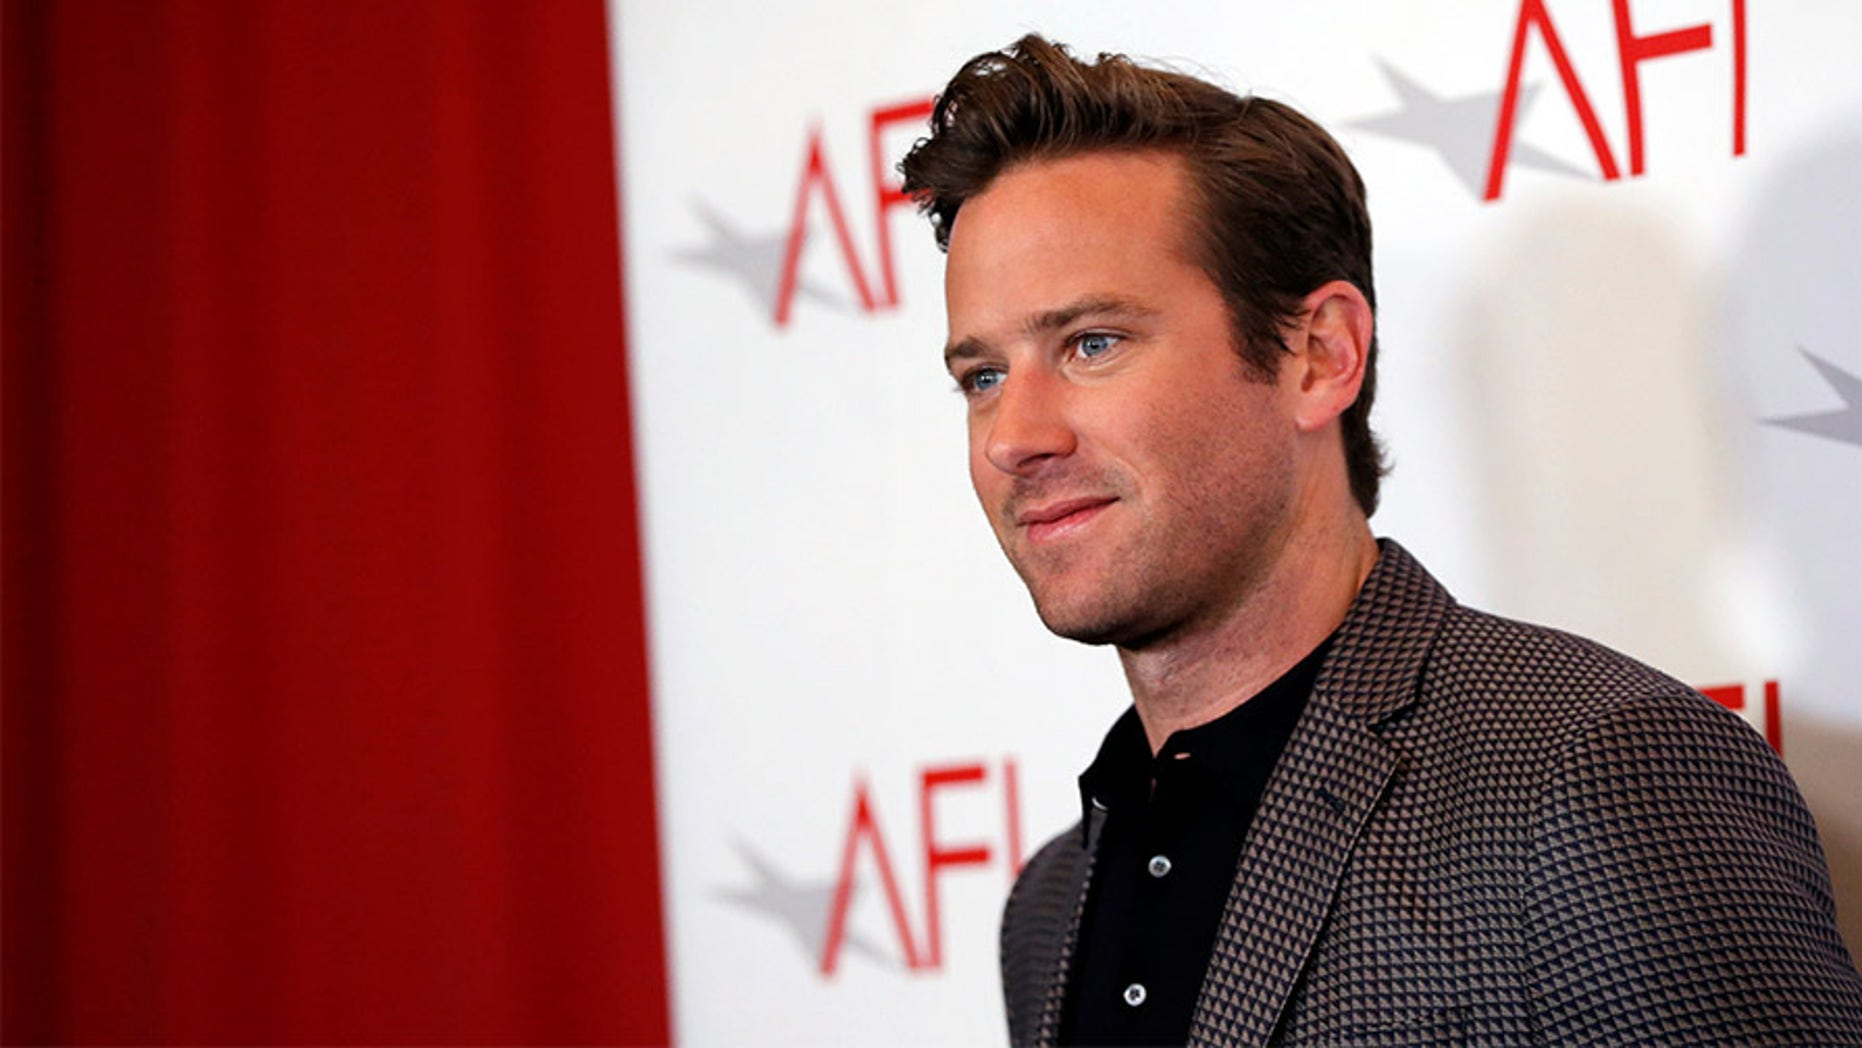 https://nypost.com/2018/03/14/armie-hammer-posts-mug-shot-on-instagram/?_ga=2.261128782.2101265821.1521024960-1503639607.1512675144